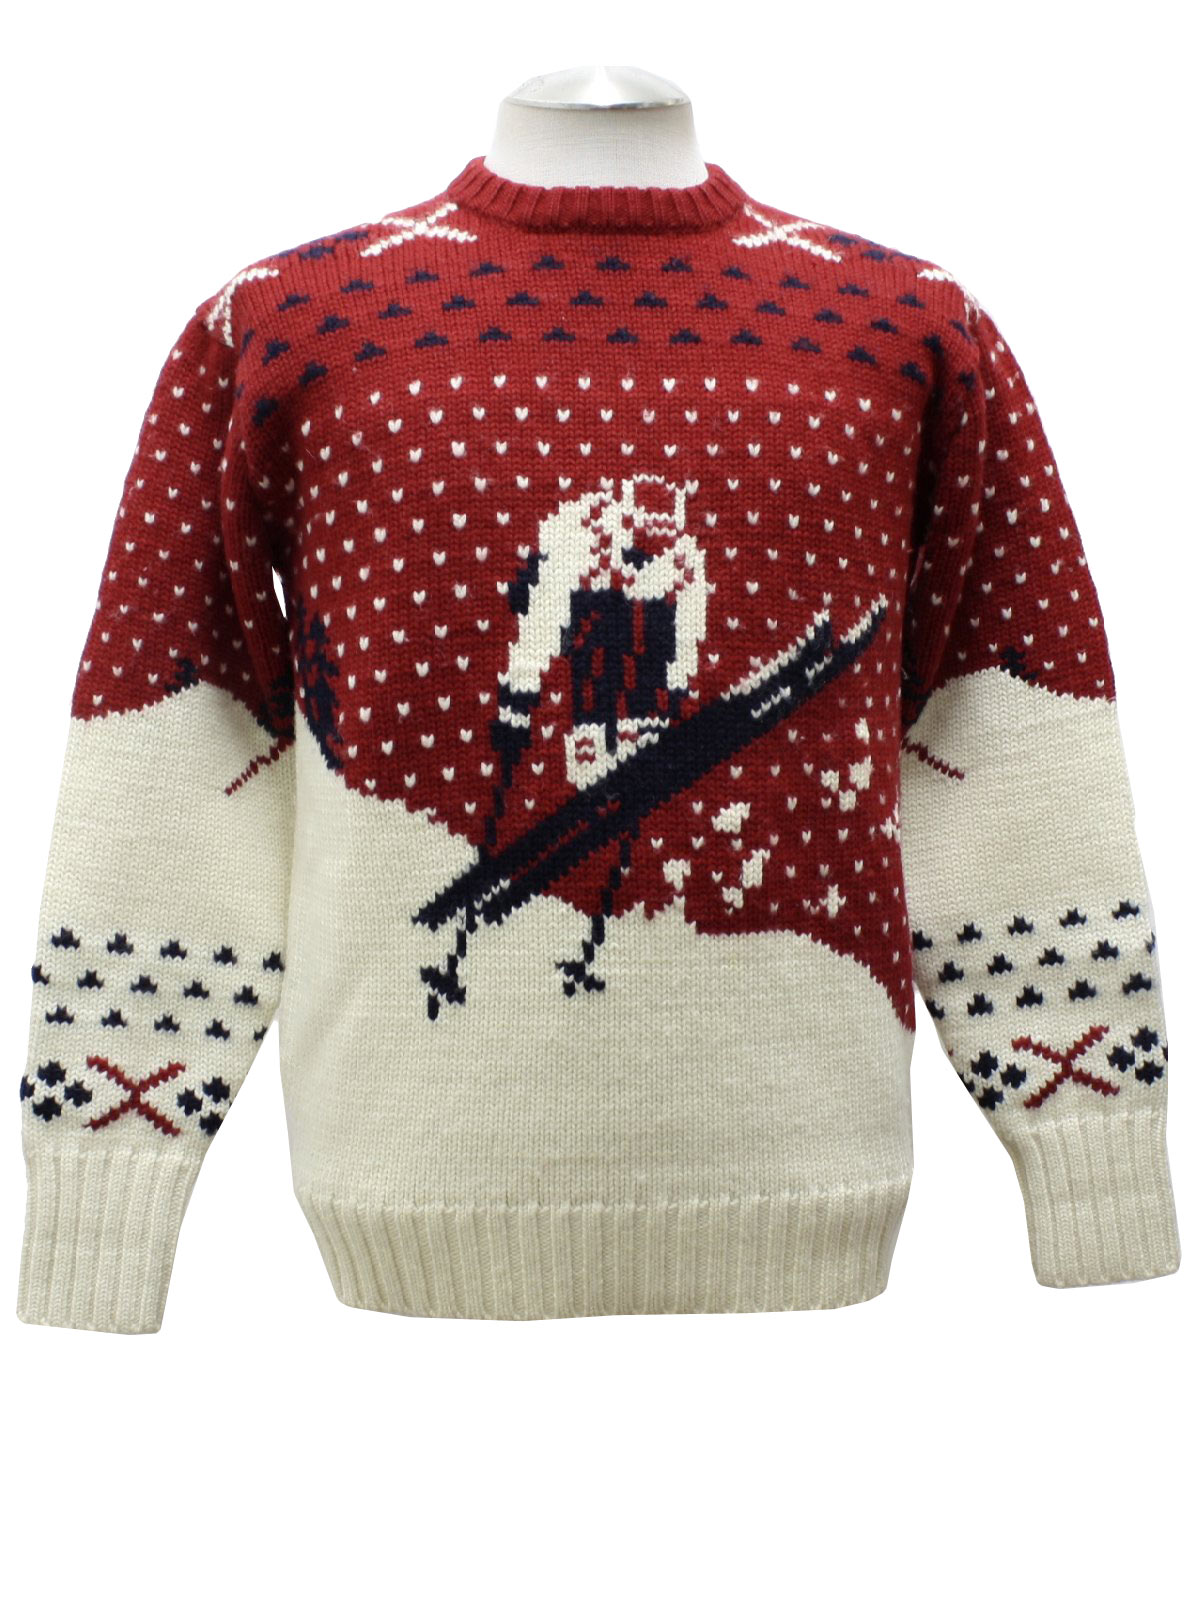 Retro 80\u0027s Sweater: 80s vintage -Polo by Ralph Lauren- Mens red white and black  pullover style wool ski sweater with old school intarsia knit ski jumper,  ...